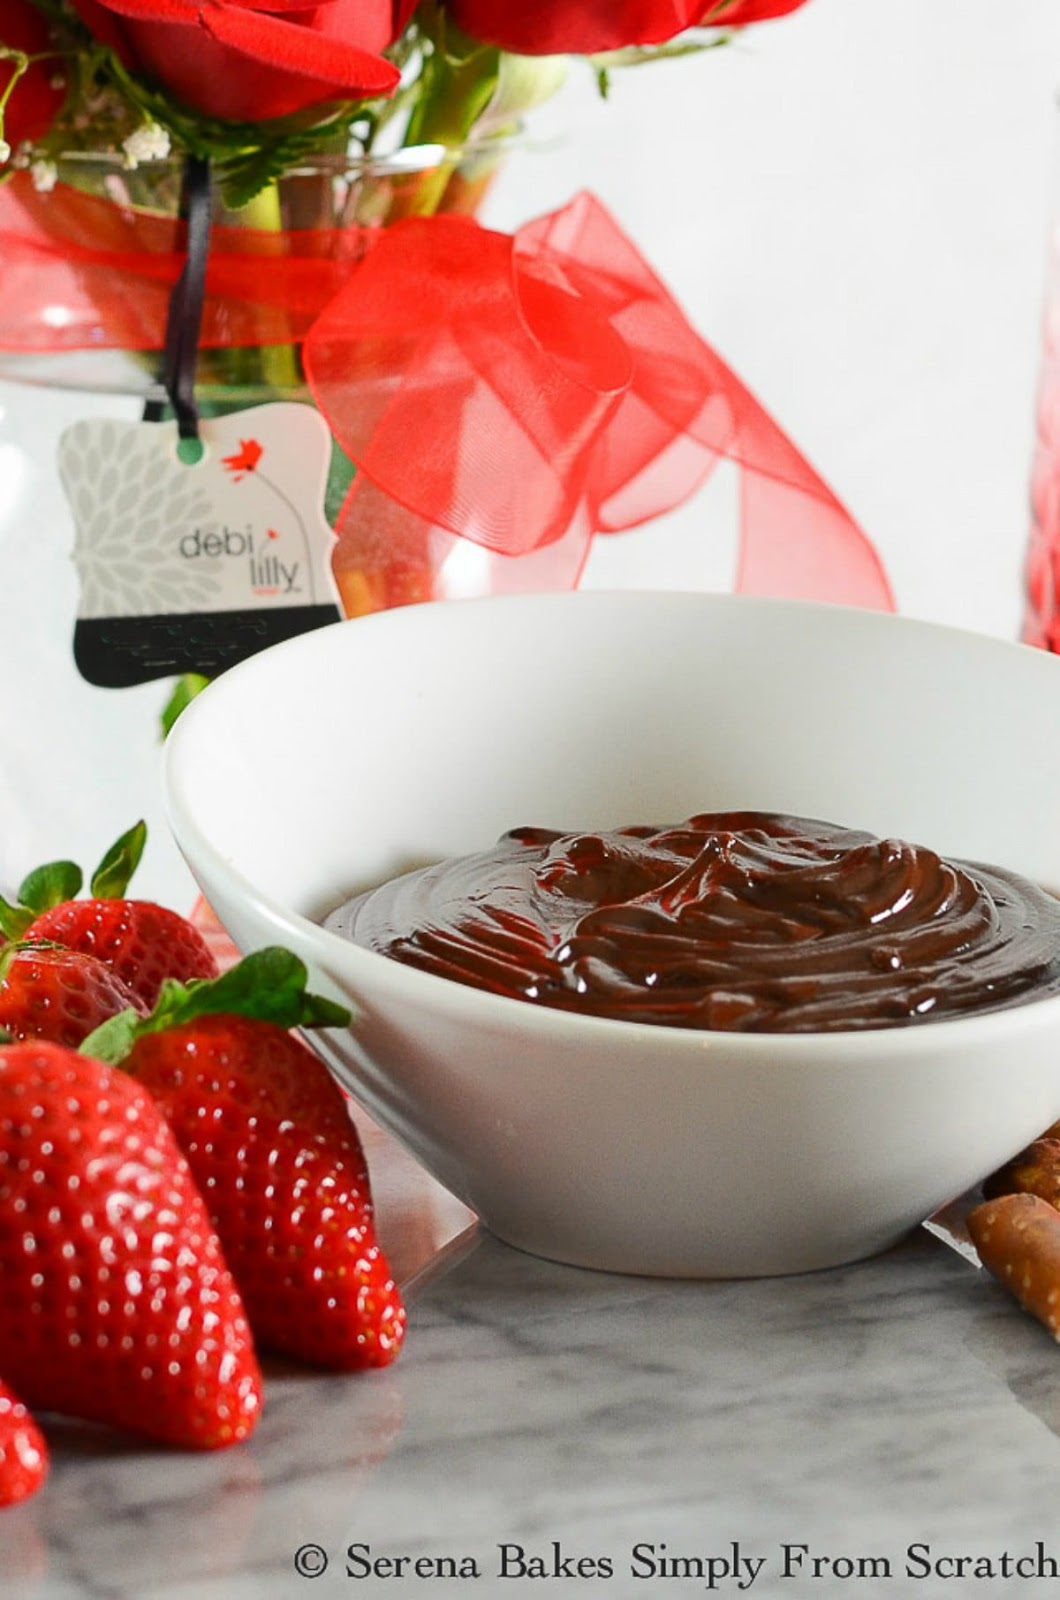 A favorite Chocolate Fondue recipe is this Hot Fudge Fondue! It's a favorite for dipping fresh fruit, dried fruit and pretzel rods. It's perfect for Valentines Day or Easter for dessert from Serena Bakes Simply From Scratch.